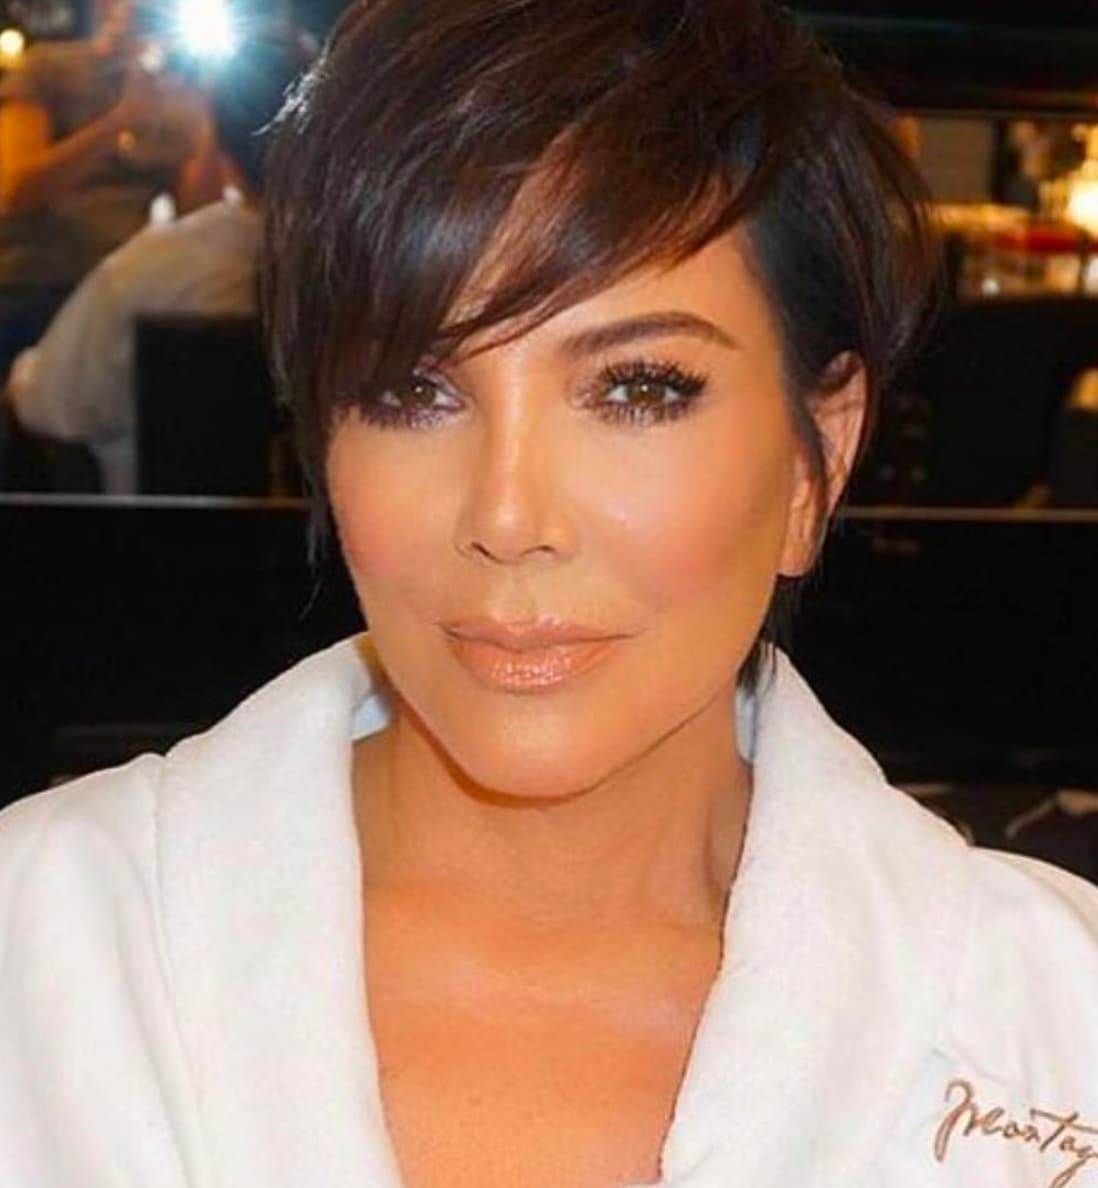 Naked Kris Jenner 31 Pictures Boobs, Icloud-4003